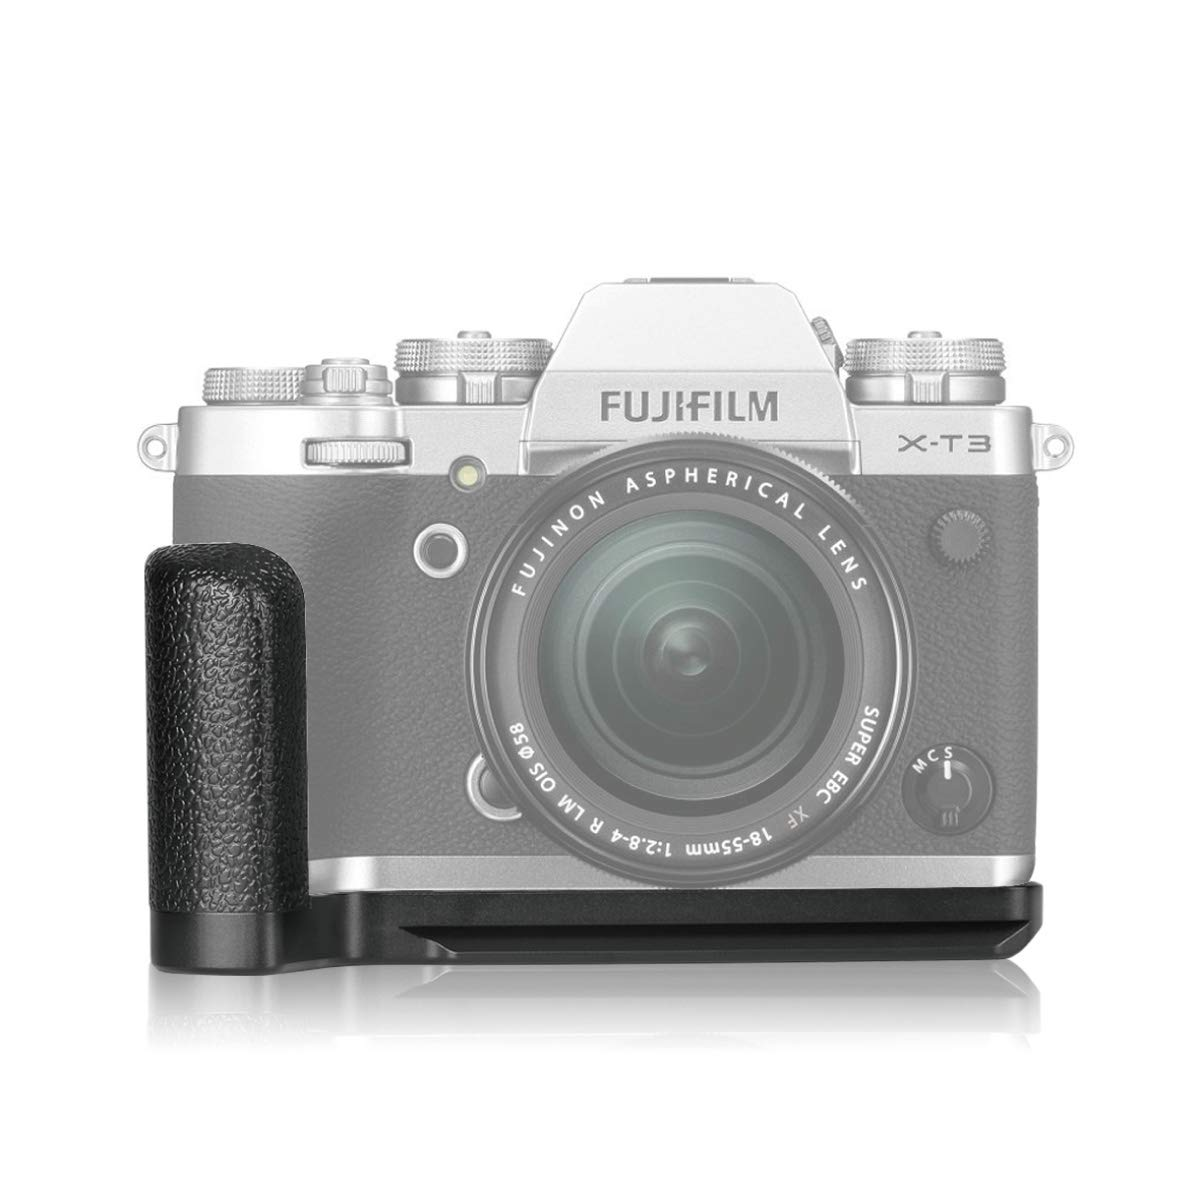 Meike XT3G Aluminum Alloy Hand Grip Quick Release Plate L Bracket MHG-XT3 Replacement for Fujifilm X-T3 by Meike